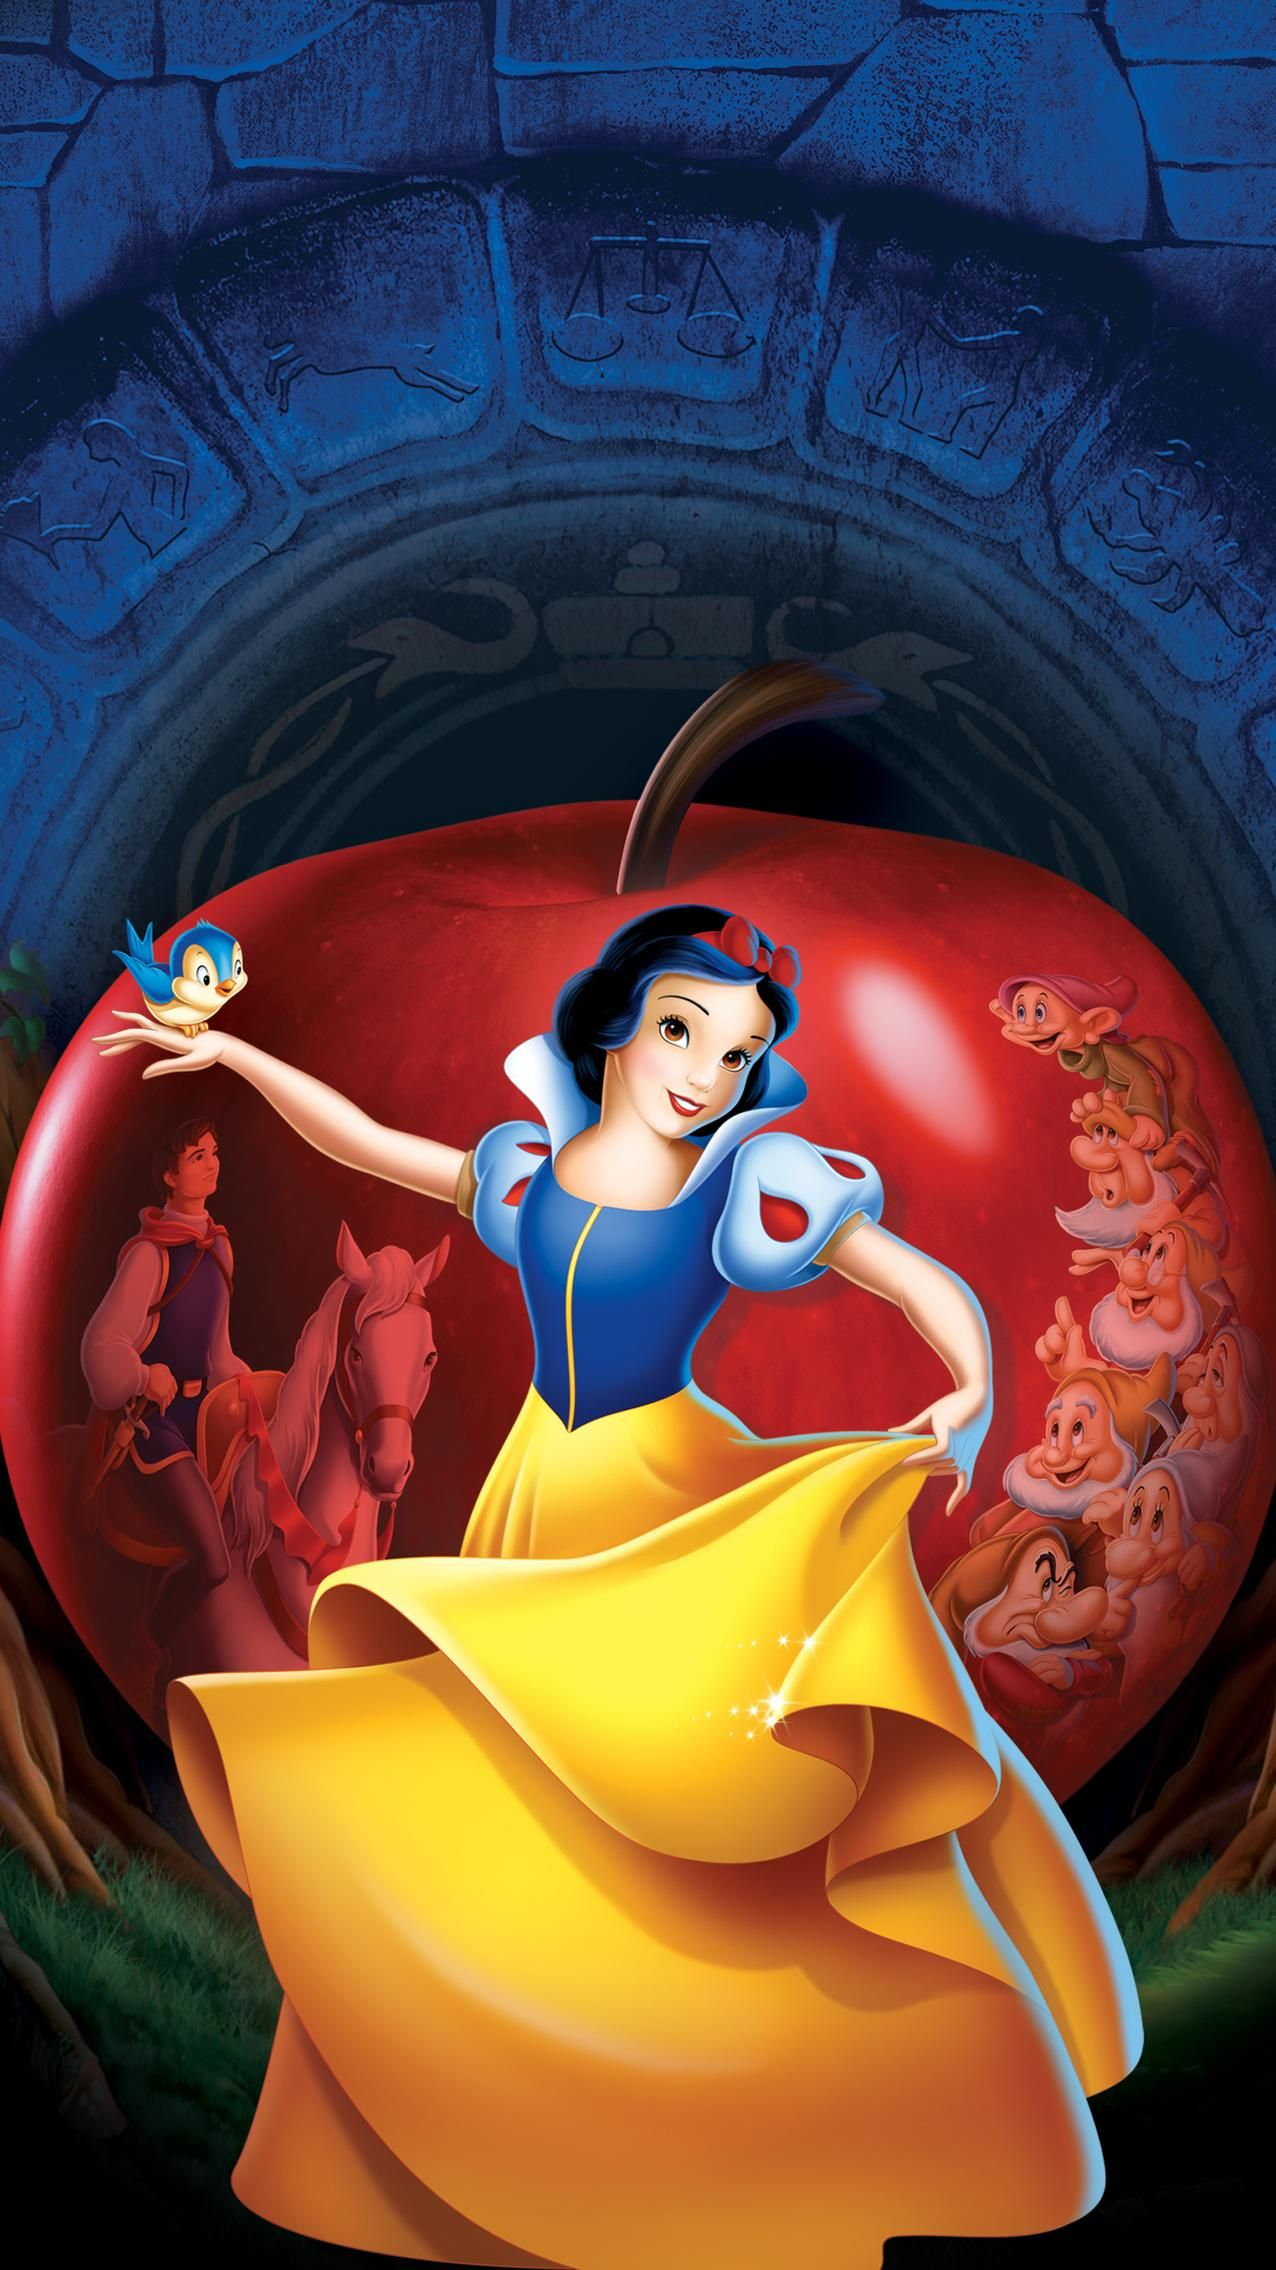 Snow White and the Seven Dwarfs (1937) Phone Wallpaper